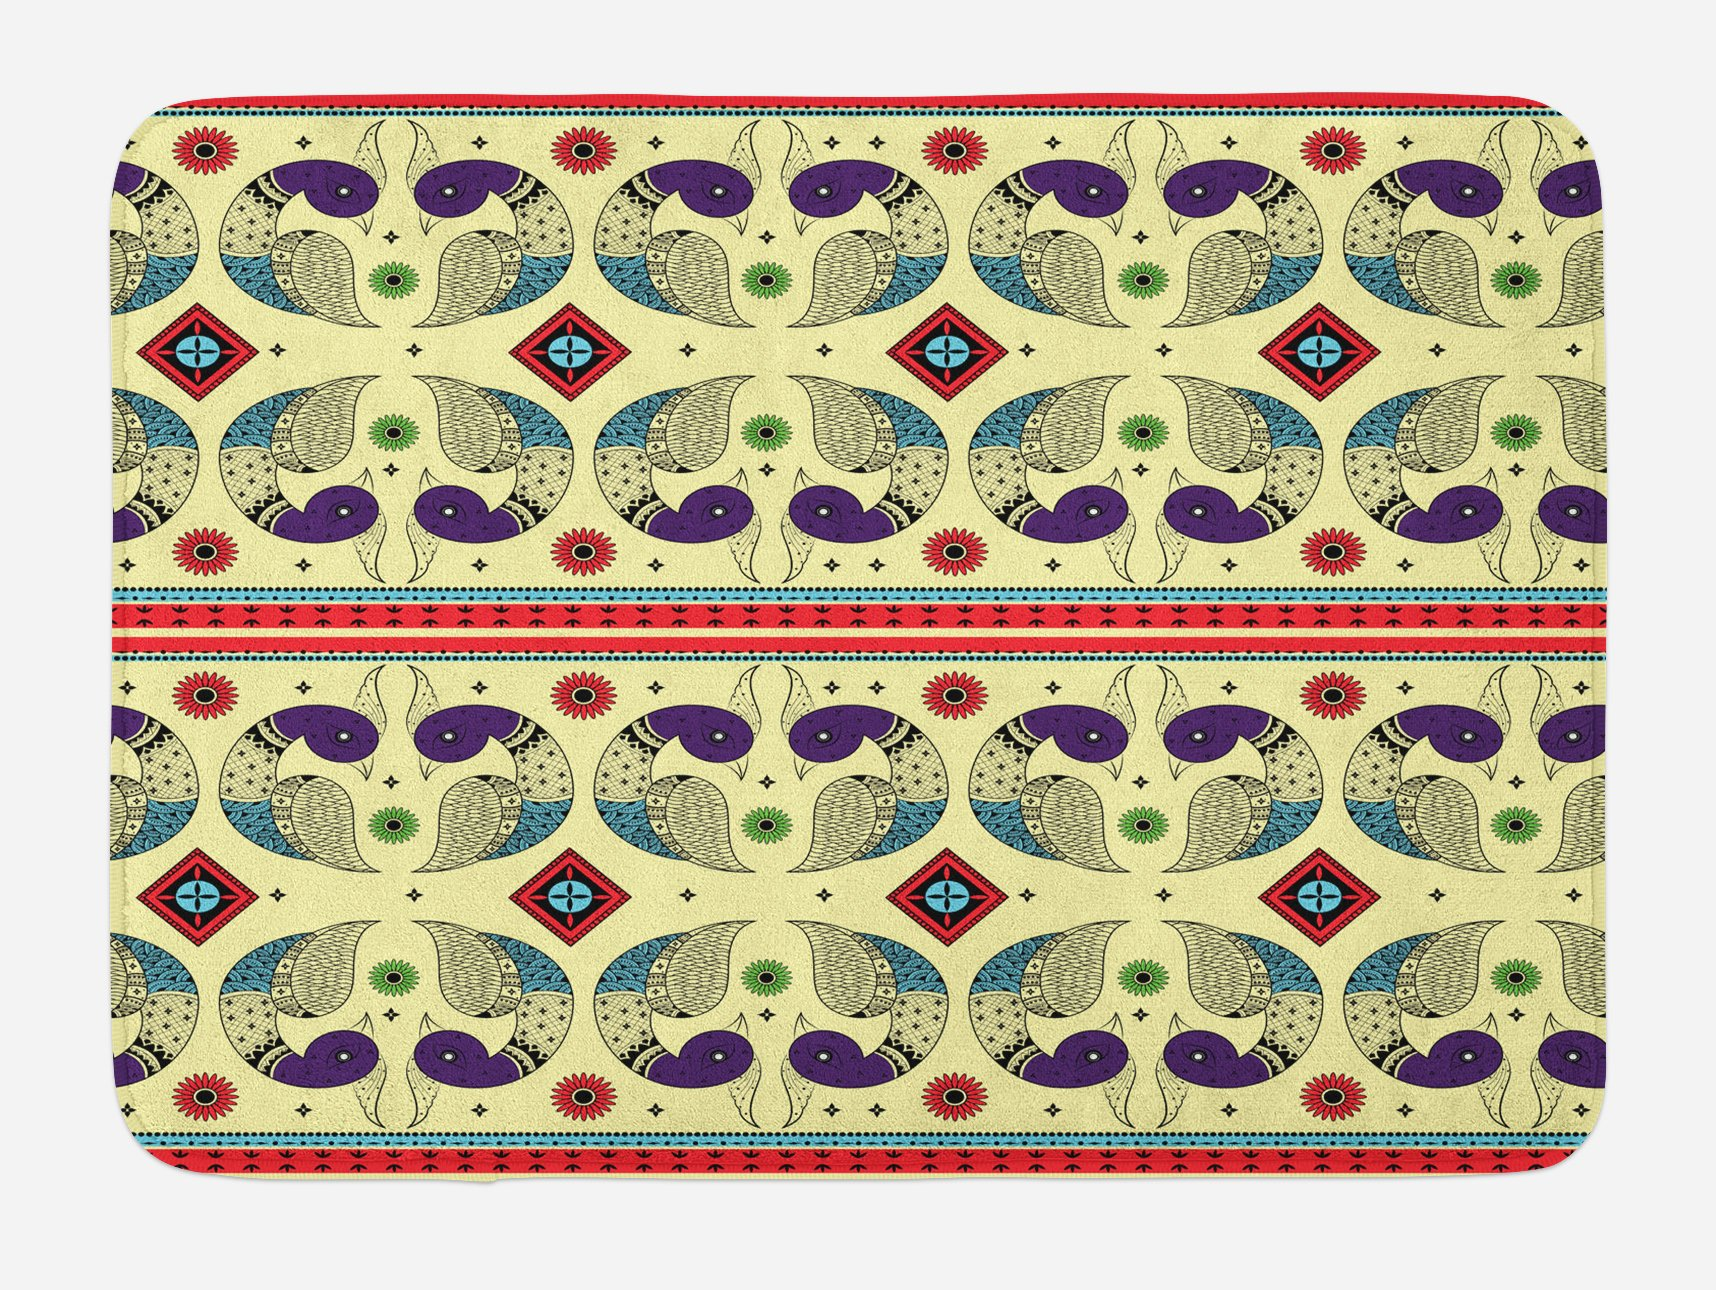 Ambesonne Tribal Bath Mat, Ethnic and Creative Peacock Pattern with Flowers Abstract Native America Art, Plush Bathroom Decor Mat with Non Slip Backing, 29.5 W X 17.5 W Inches, Cream and Purple